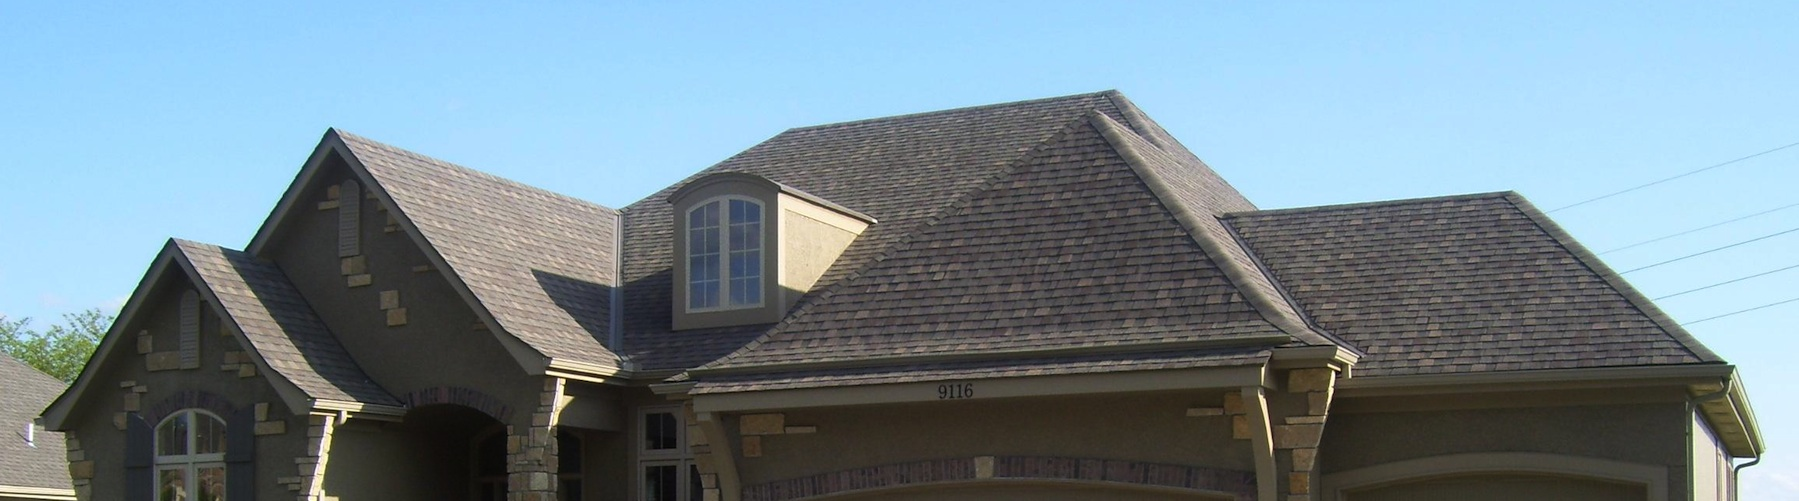 North-Texas-Roofing